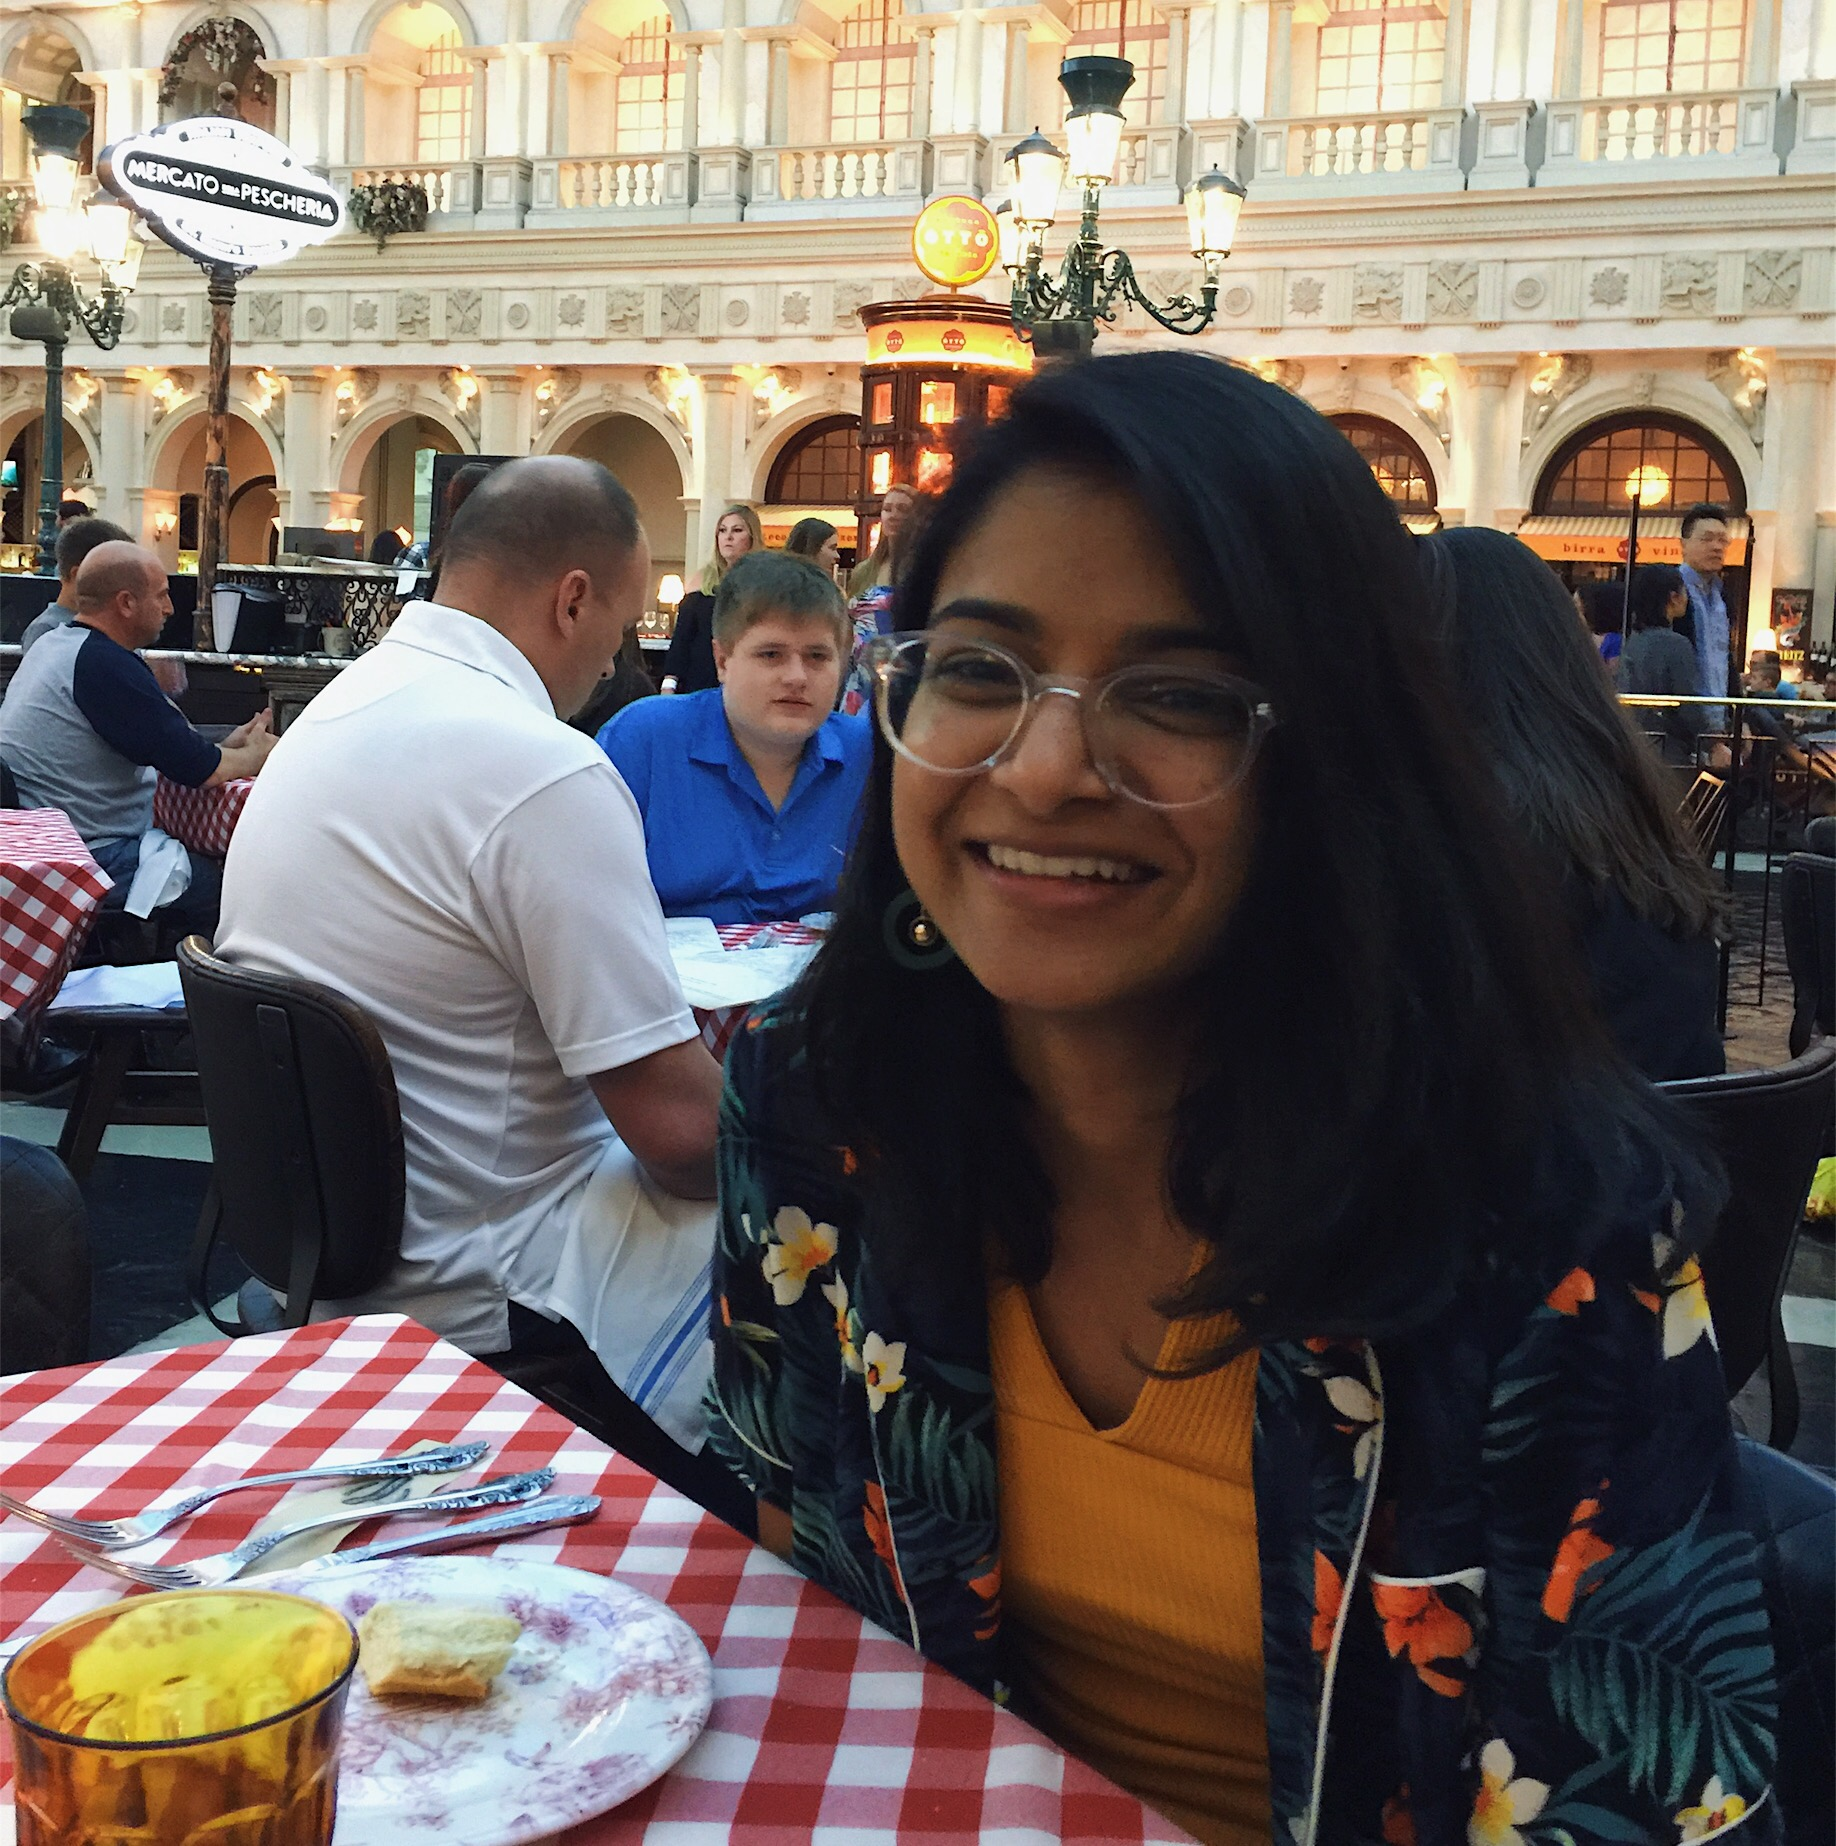 Tanya Mahadwar - Class of 2021 - Major: Political ScienceOther Activities: The Berkeley Forum, research at the Human Rights Center, and watching videos of old cats getting adopted #foreverhome.Fun Fact: I was once slapped by a turtle that weighed two times as much as me.About Me: I would be a french bulldog, but I am a diehard cat lady.Tanya's Awards:2017 Triton Invitational - San Diego, CA (UCSD)Outstanding Attorney (10/10 ranks)